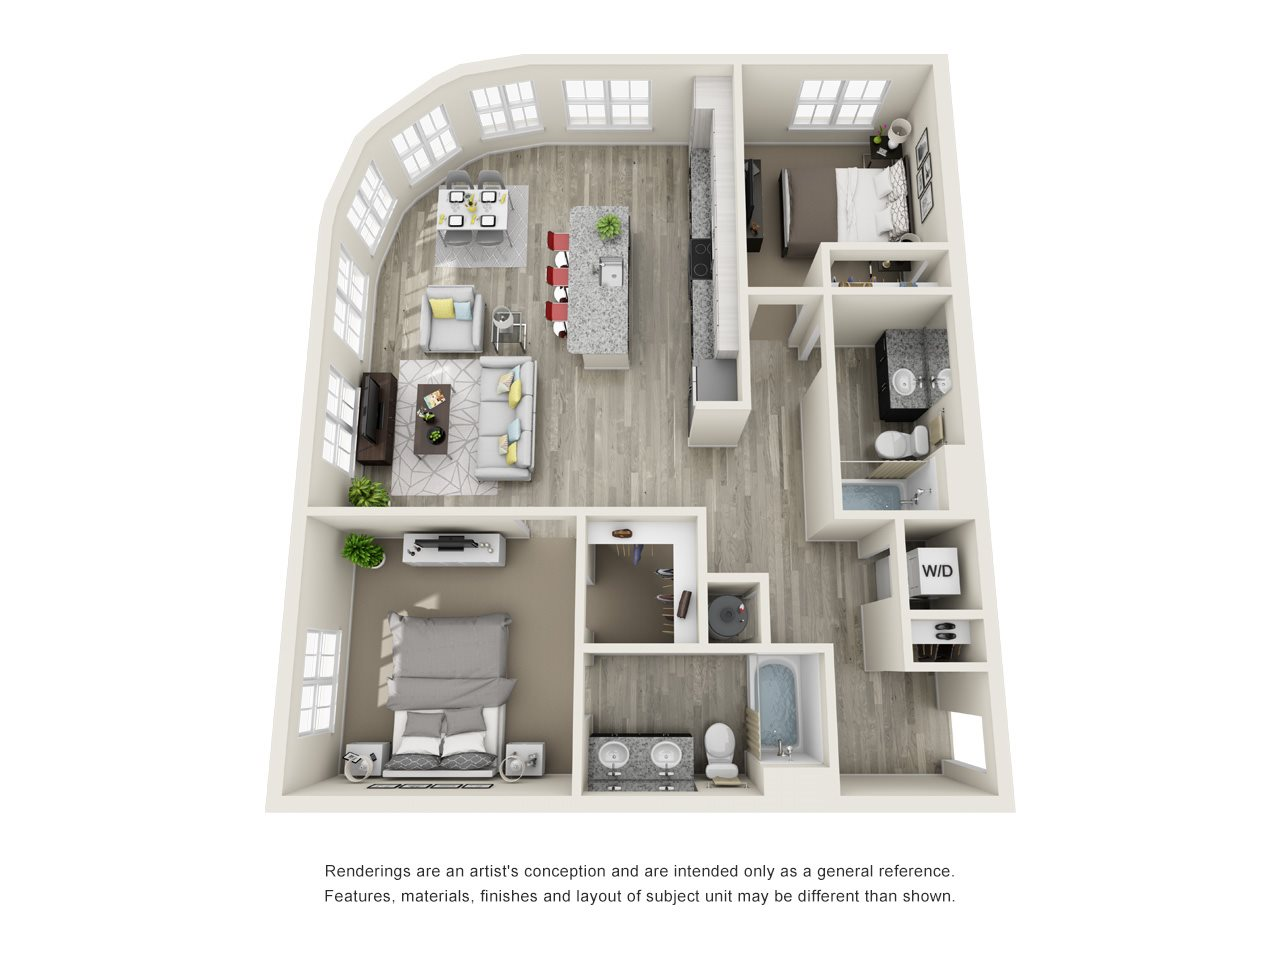 2 Bedroom, 2 Bath 1171 sqft Floor Plan 15